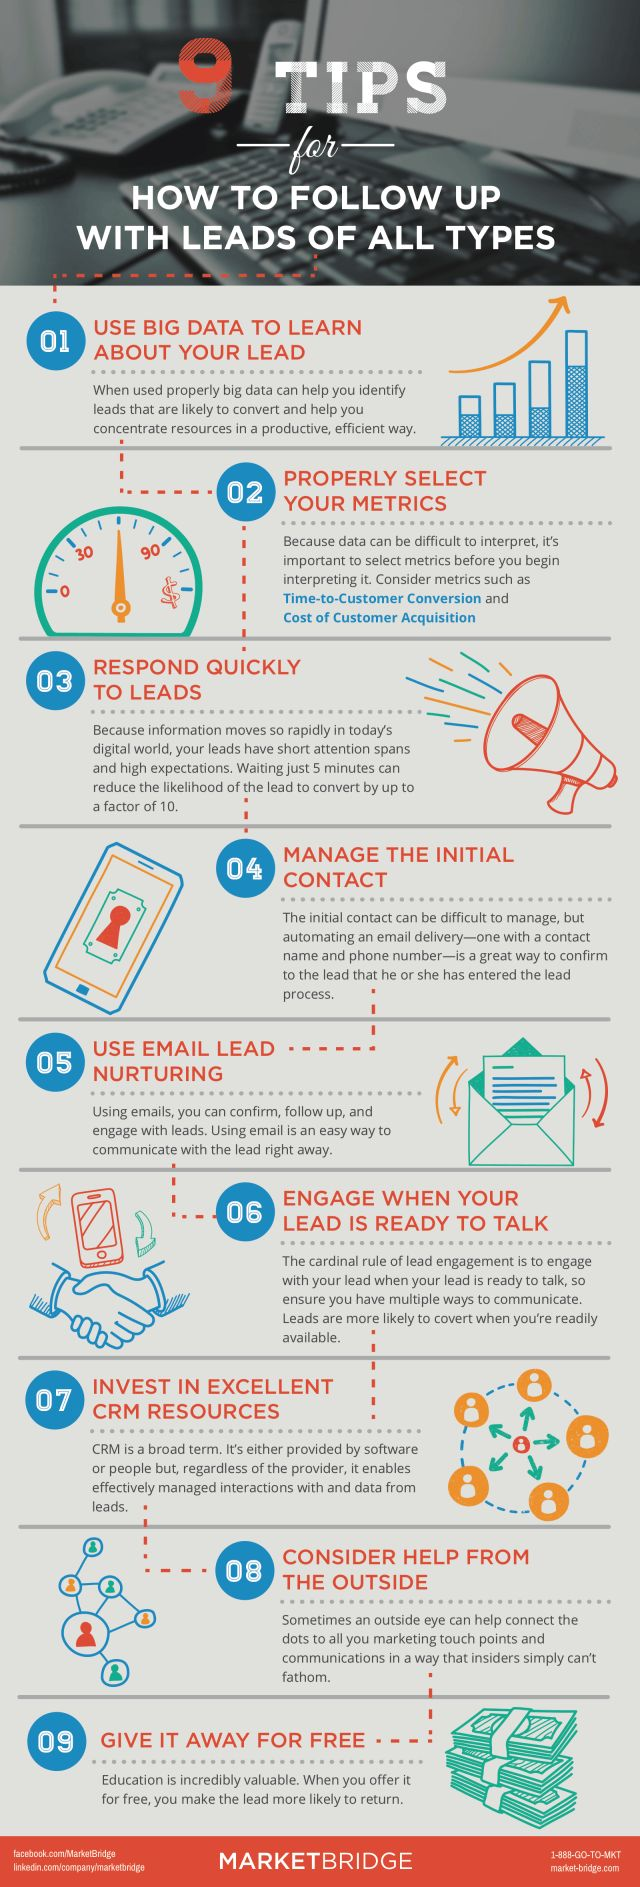 How often do you follow up sales leads? Here are 9 tips to be followed for lead nurturing. #Infographic